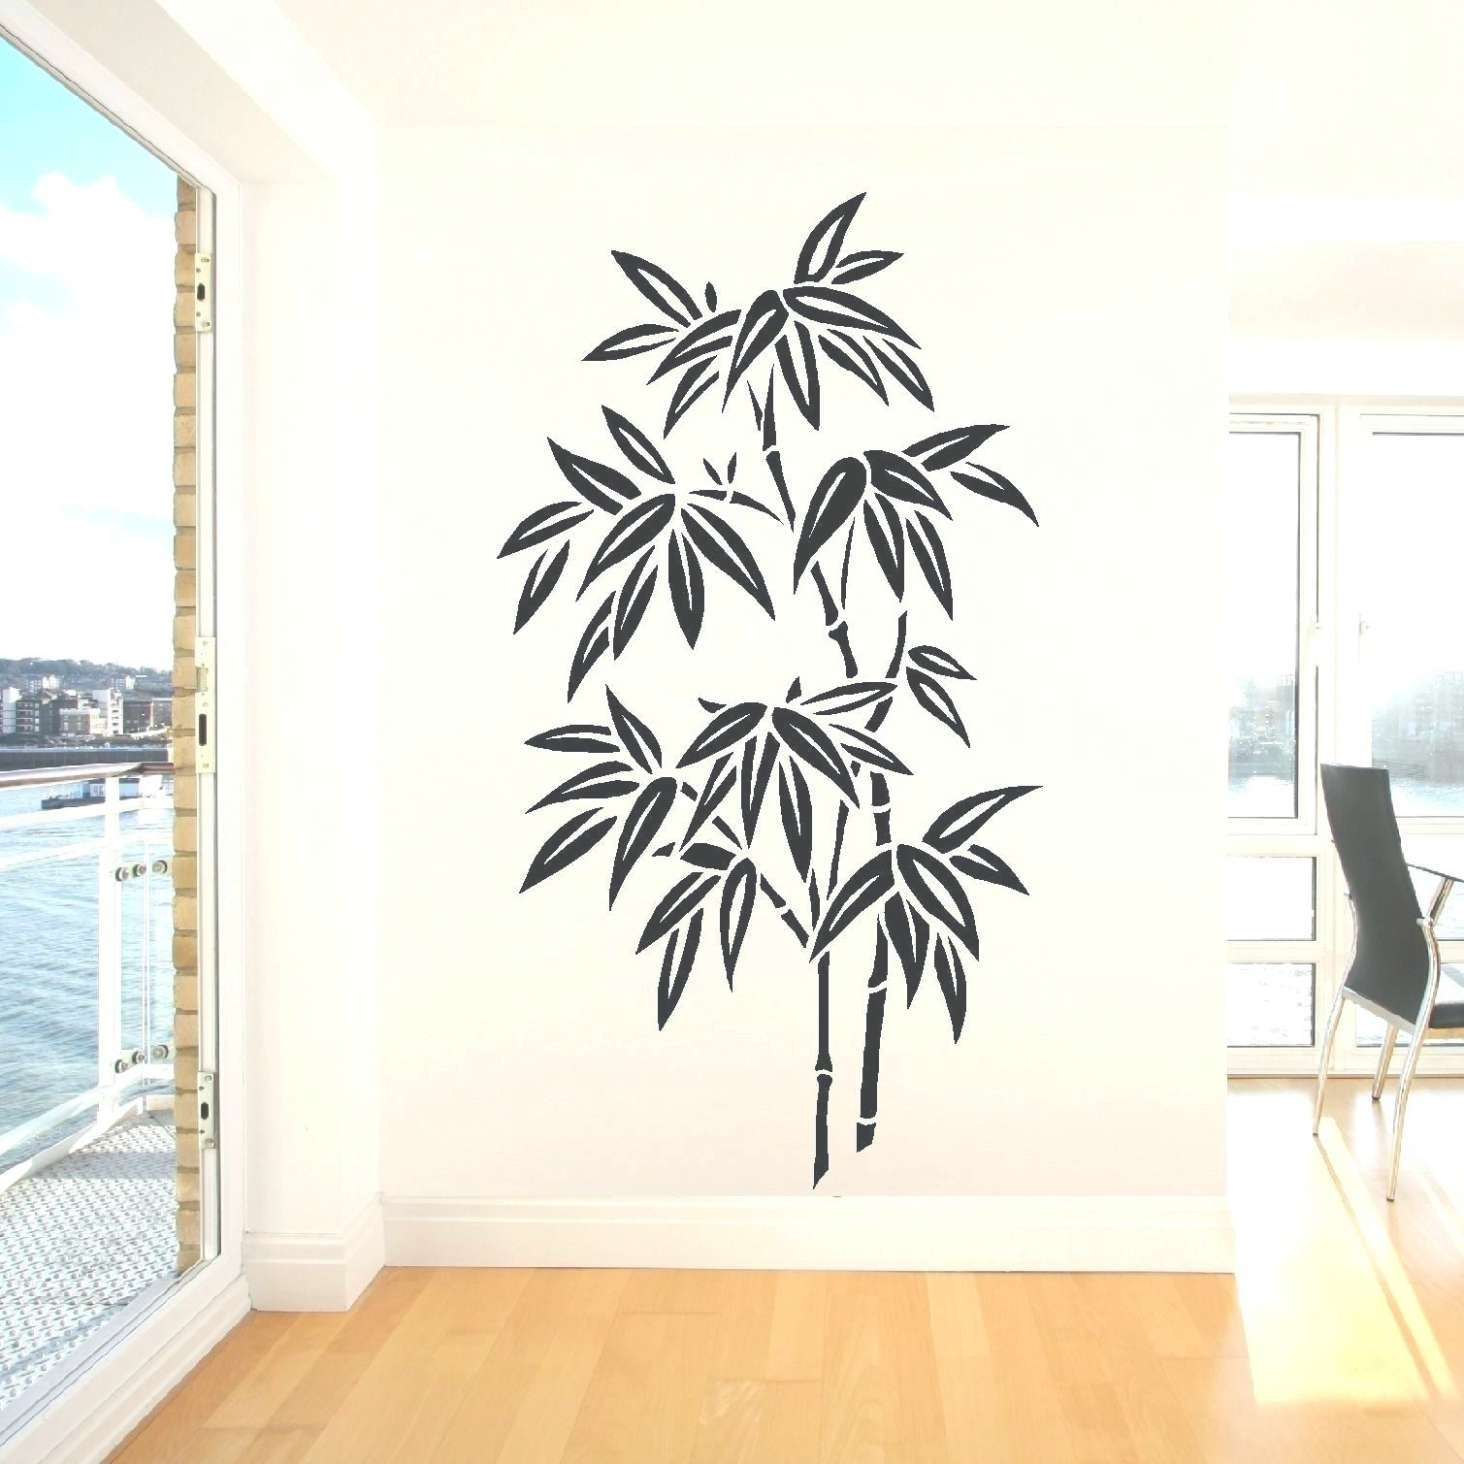 Tree Wall Decal Hobby Lobby Beautiful Awesome Palm Tree Wall Art Within Recent Palm Tree Wall Art (View 7 of 20)